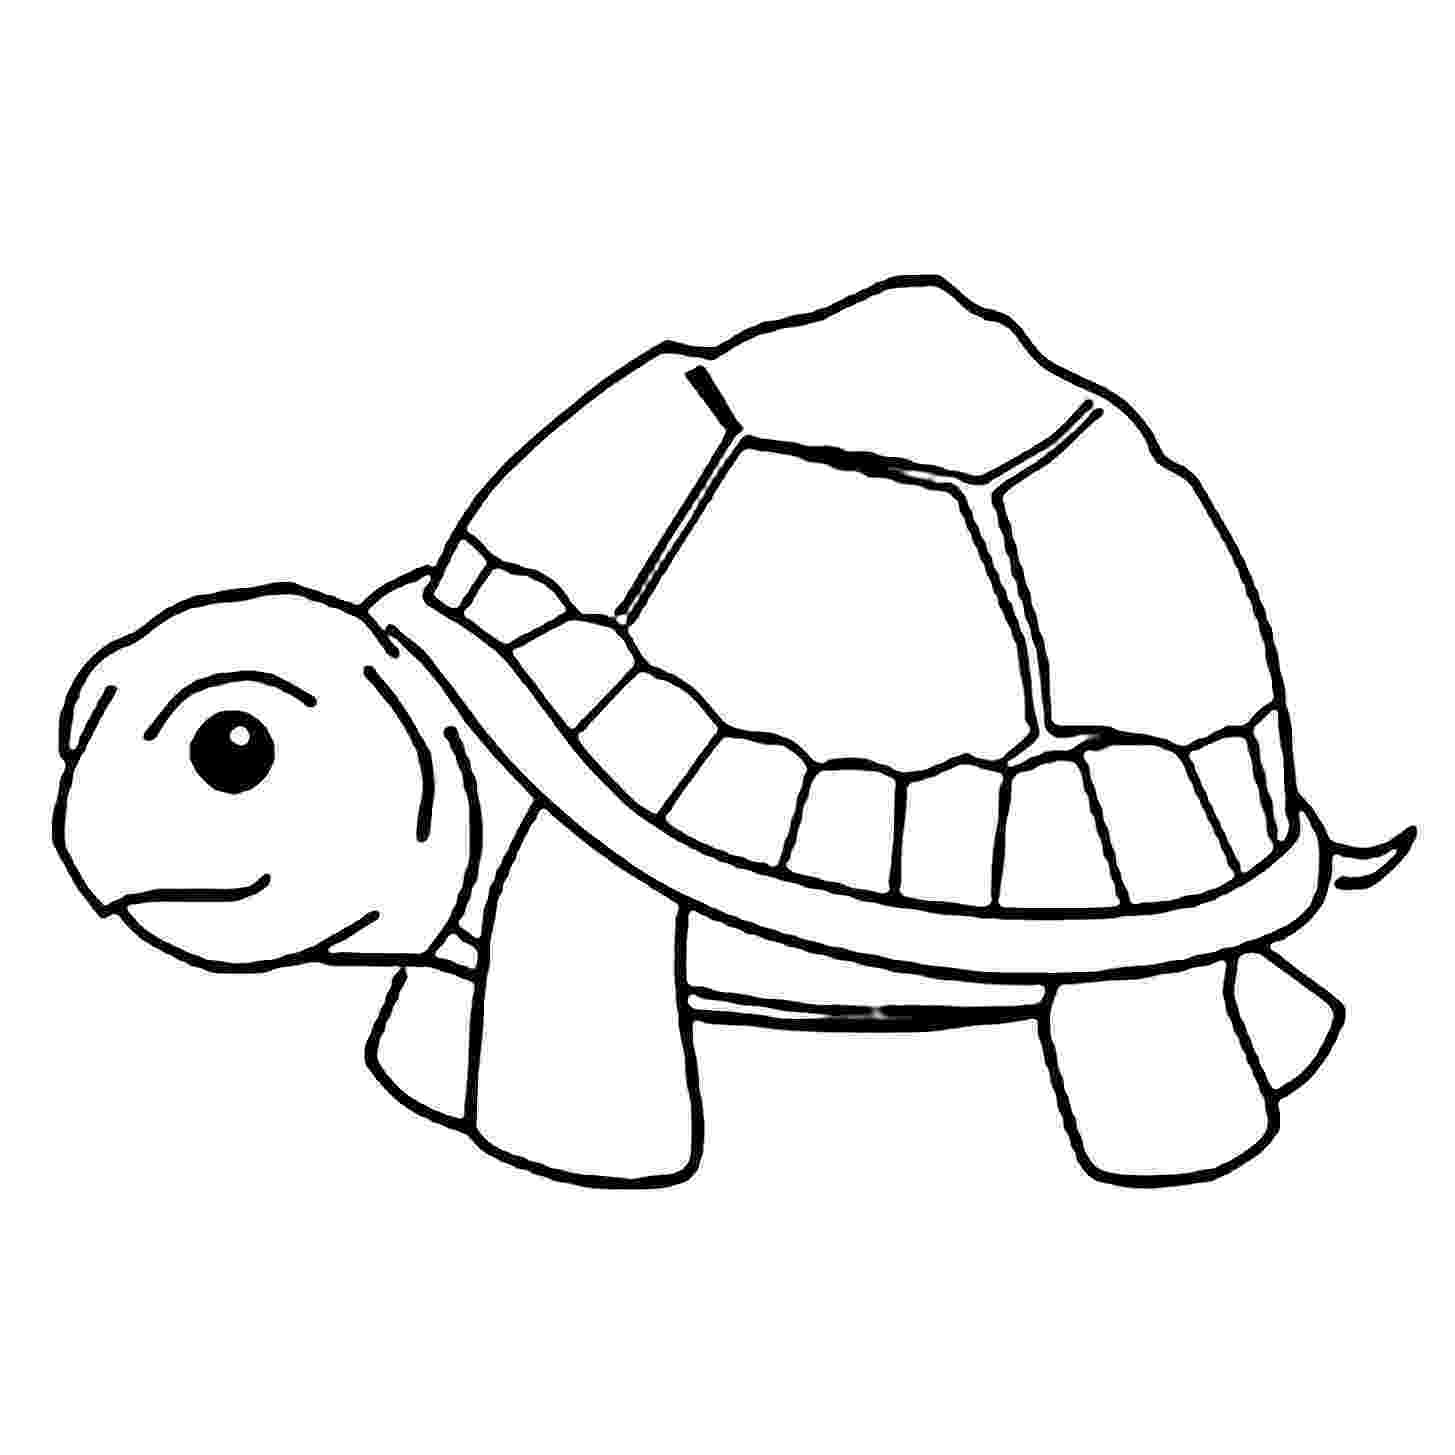 turtle coloring pictures to print incredible turtle turtles adult coloring pages pictures turtle to print coloring